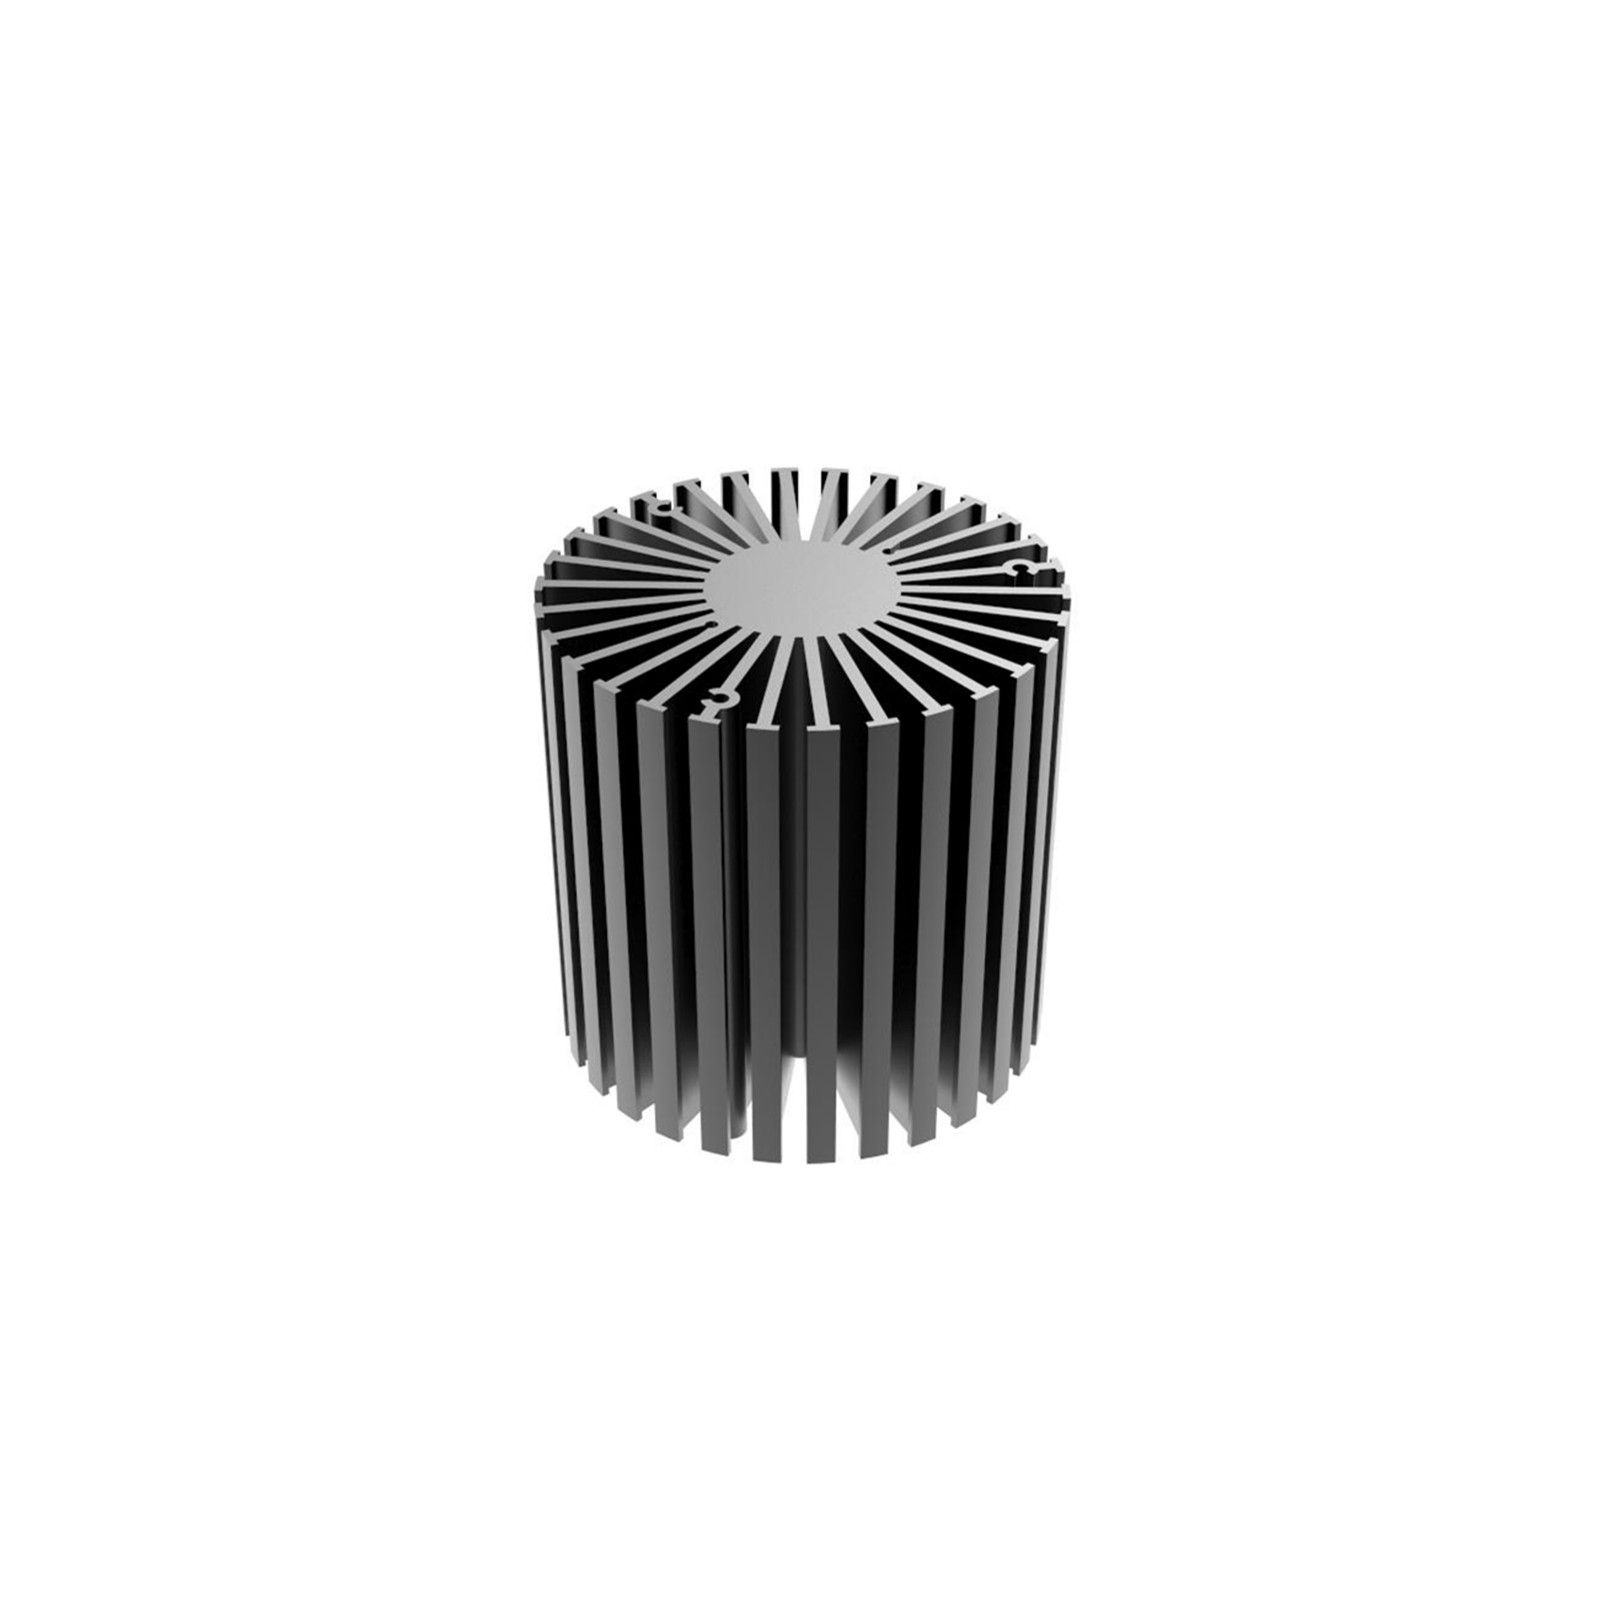 anodized mini heatsink simpoled58505870 design for cabinet-4